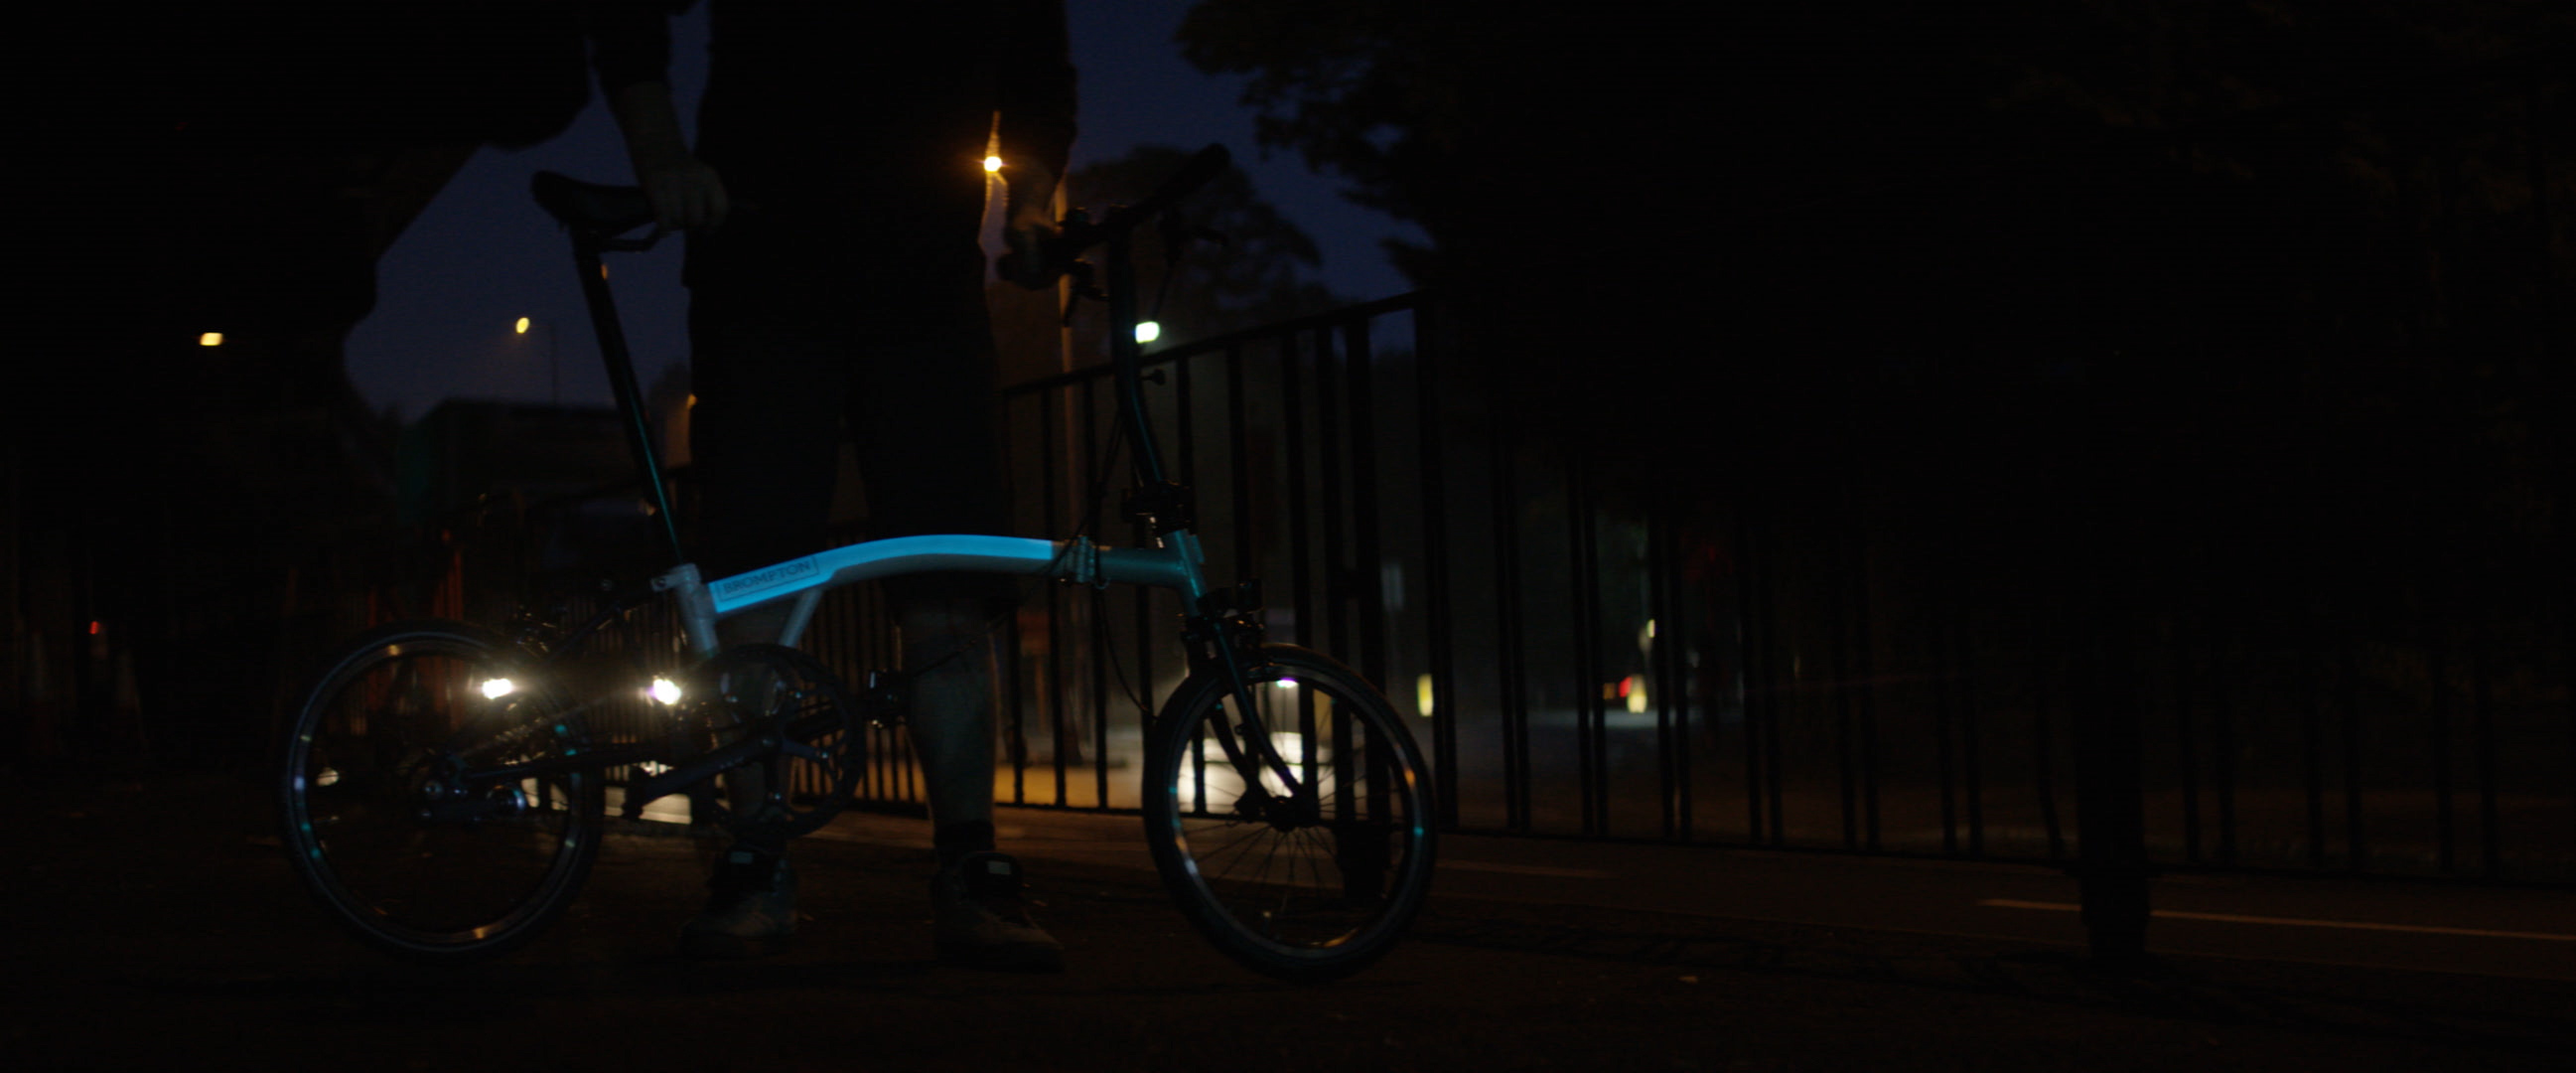 Safer riding at night